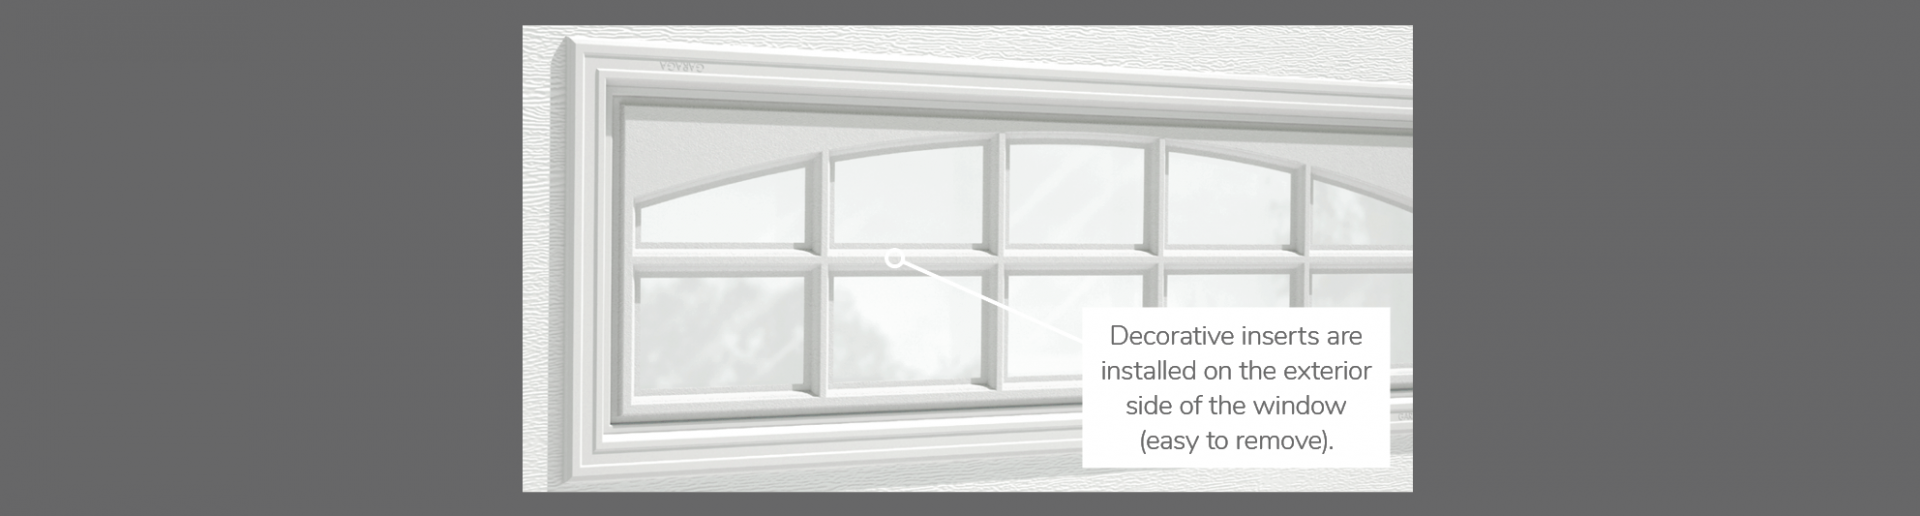 "Cascade Decorative Insert, 40"" x 13"", available for door R-16 and R-12"